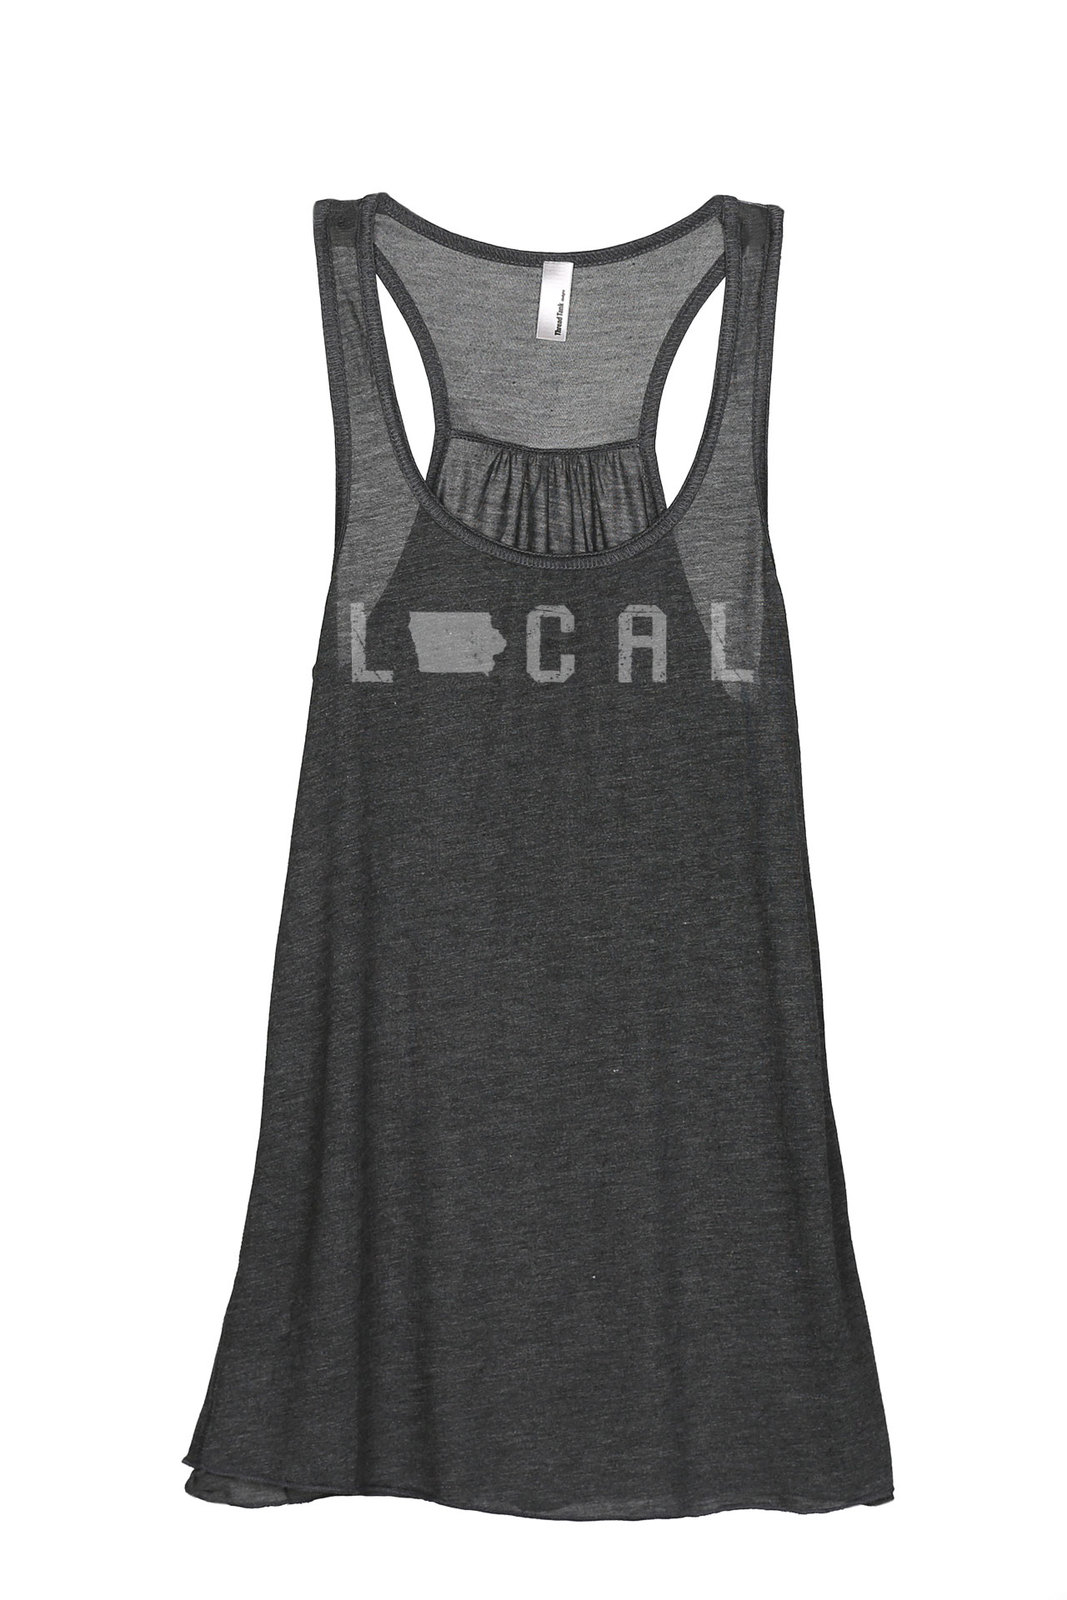 Thread Tank Local Iowa State Women's Sleeveless Flowy Racerback Tank Top Charcoa